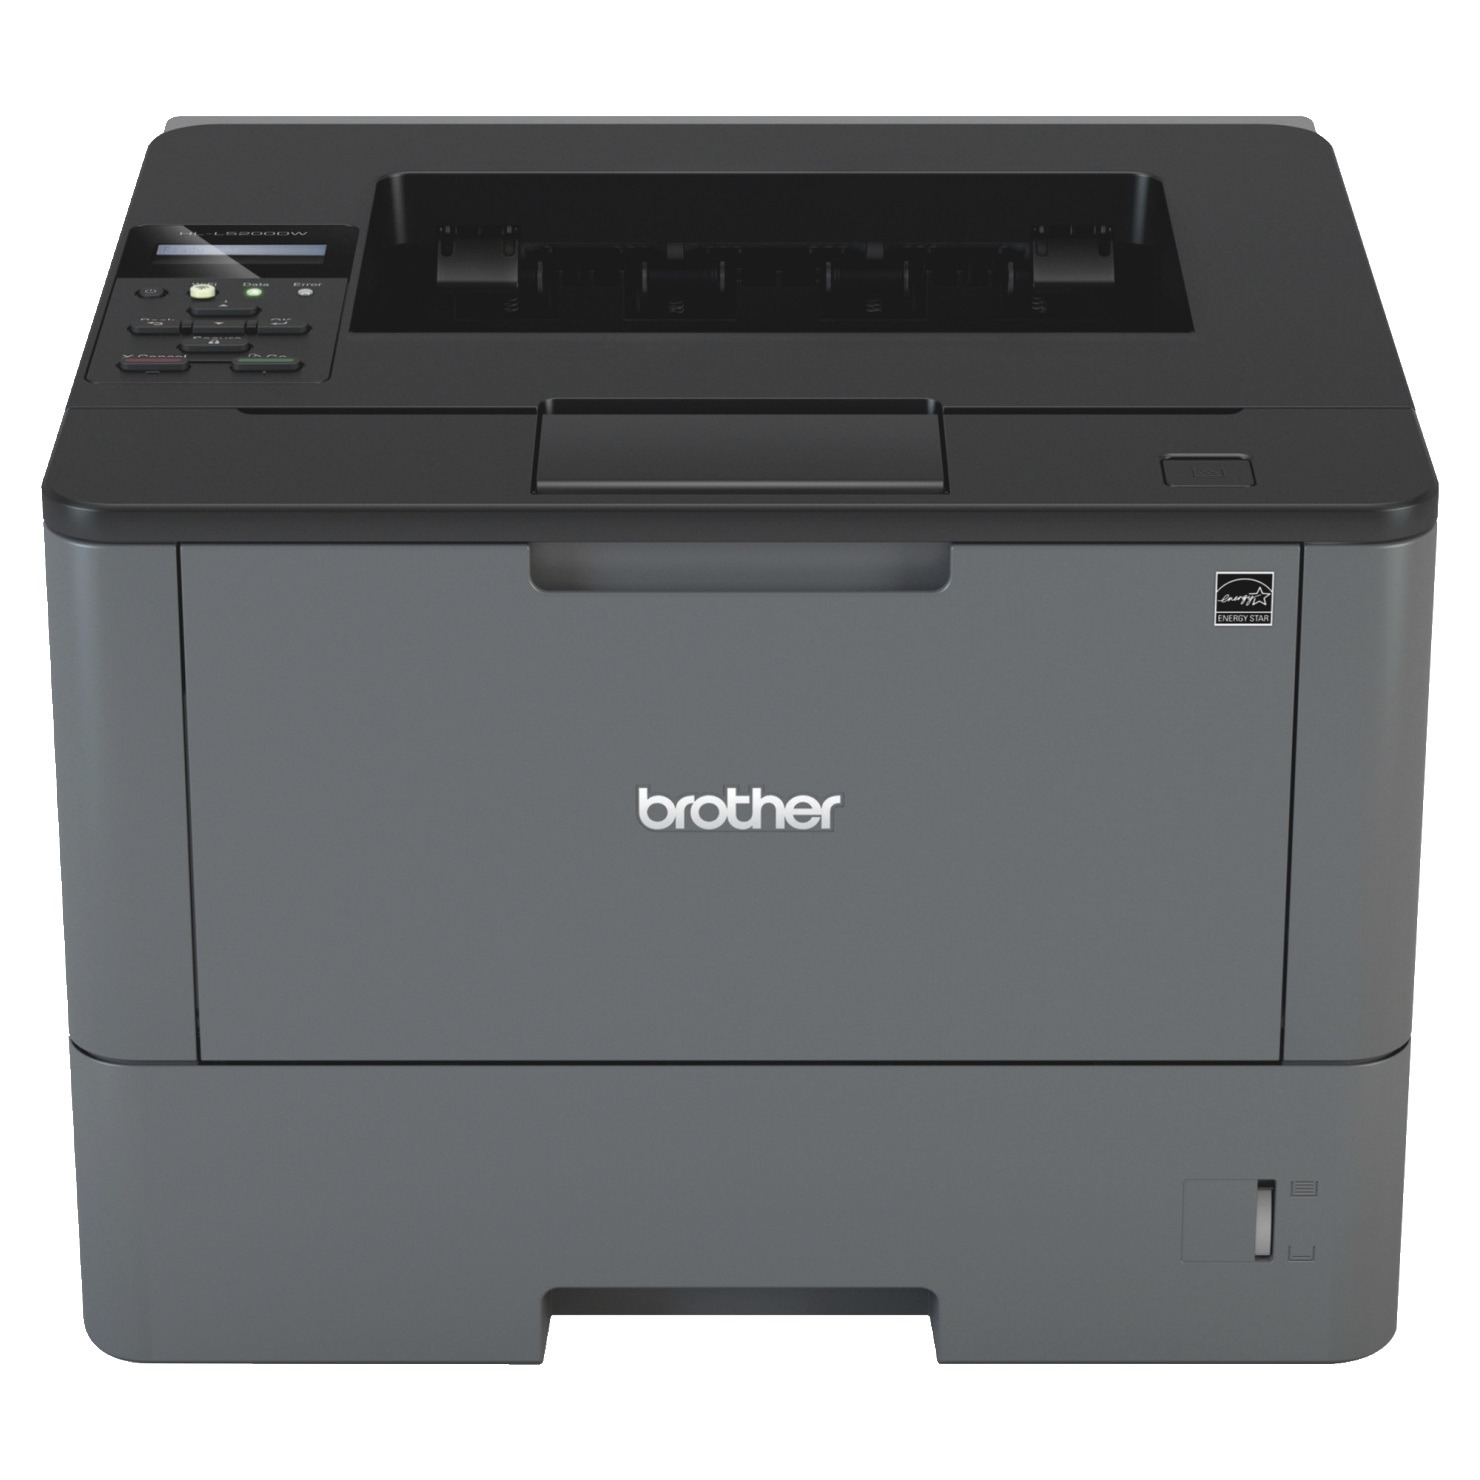 Brother laser printer HL L5200DW